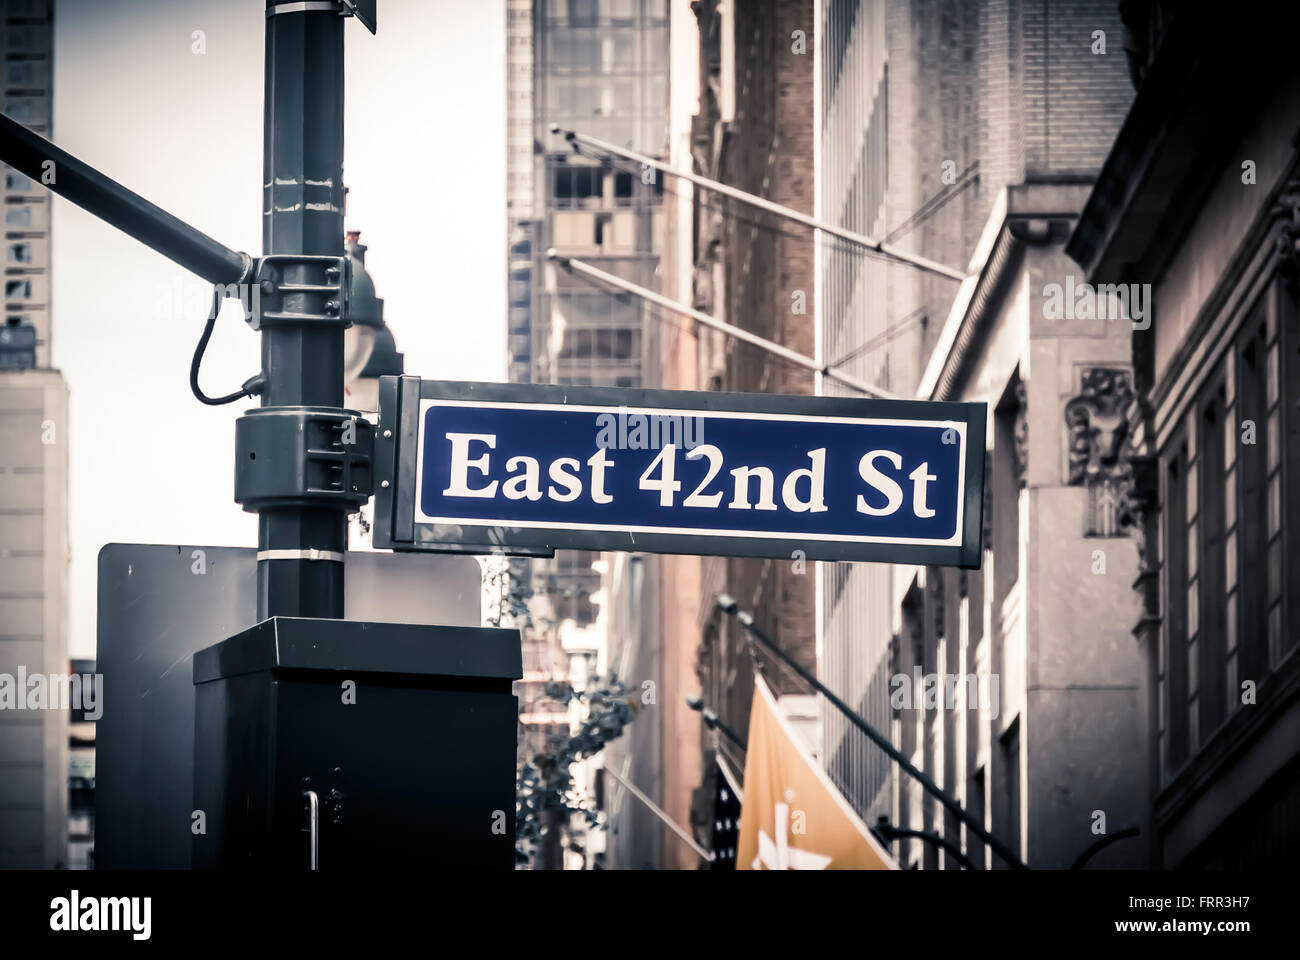 East 42nd St sign, New York City, USA. - Stock Image